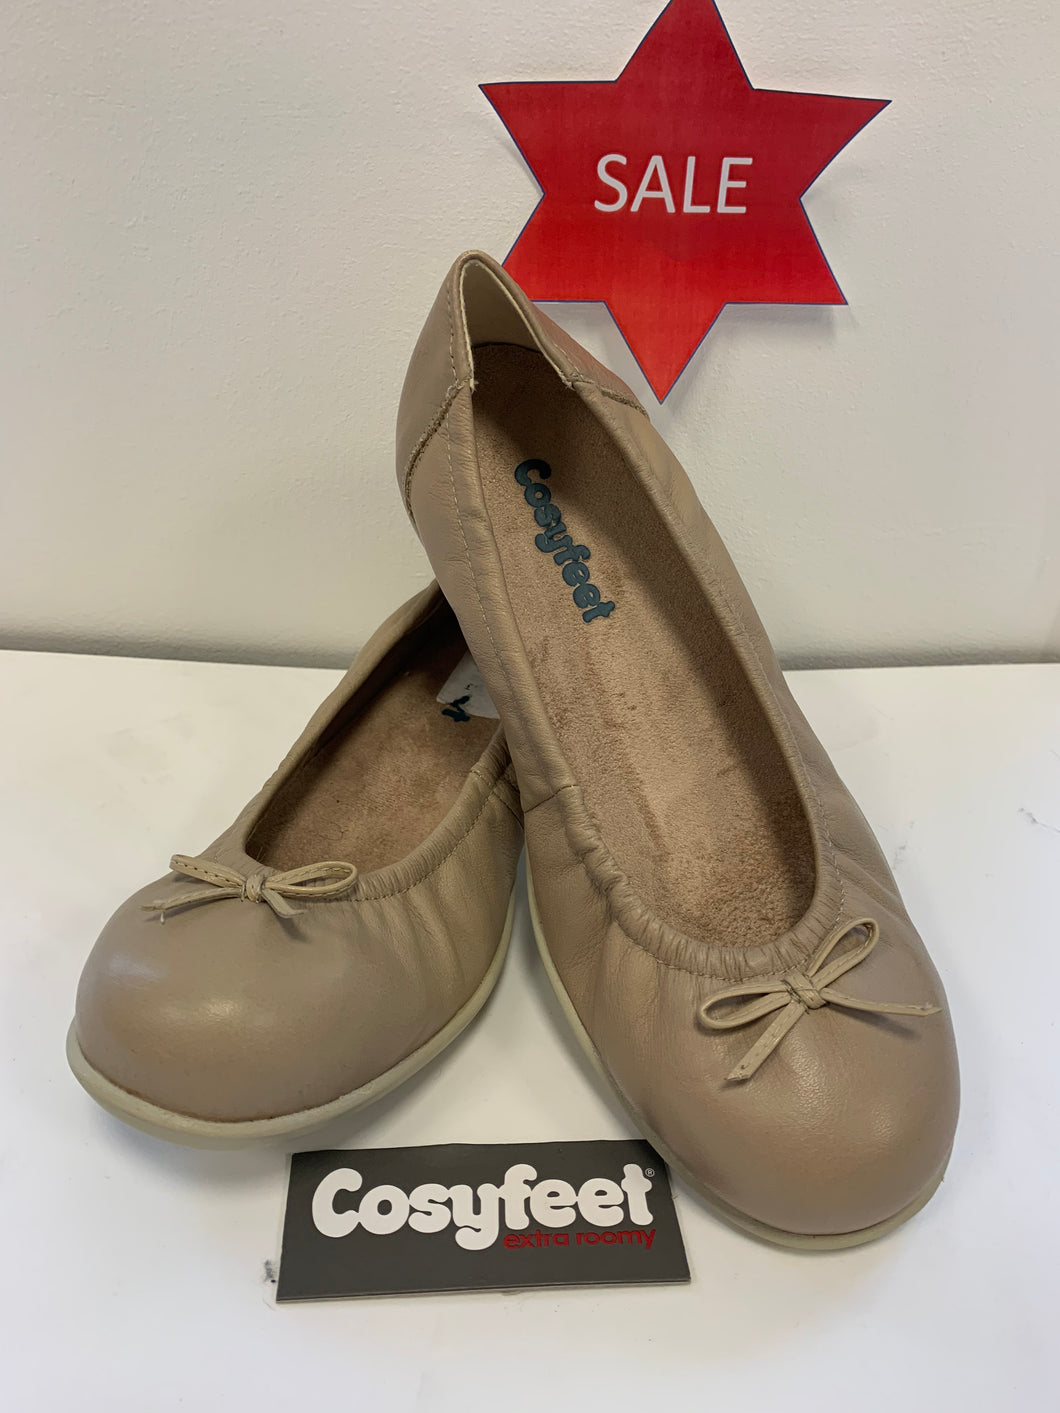 Cosyfeet - Ellie, Stone Leather (Size 6)